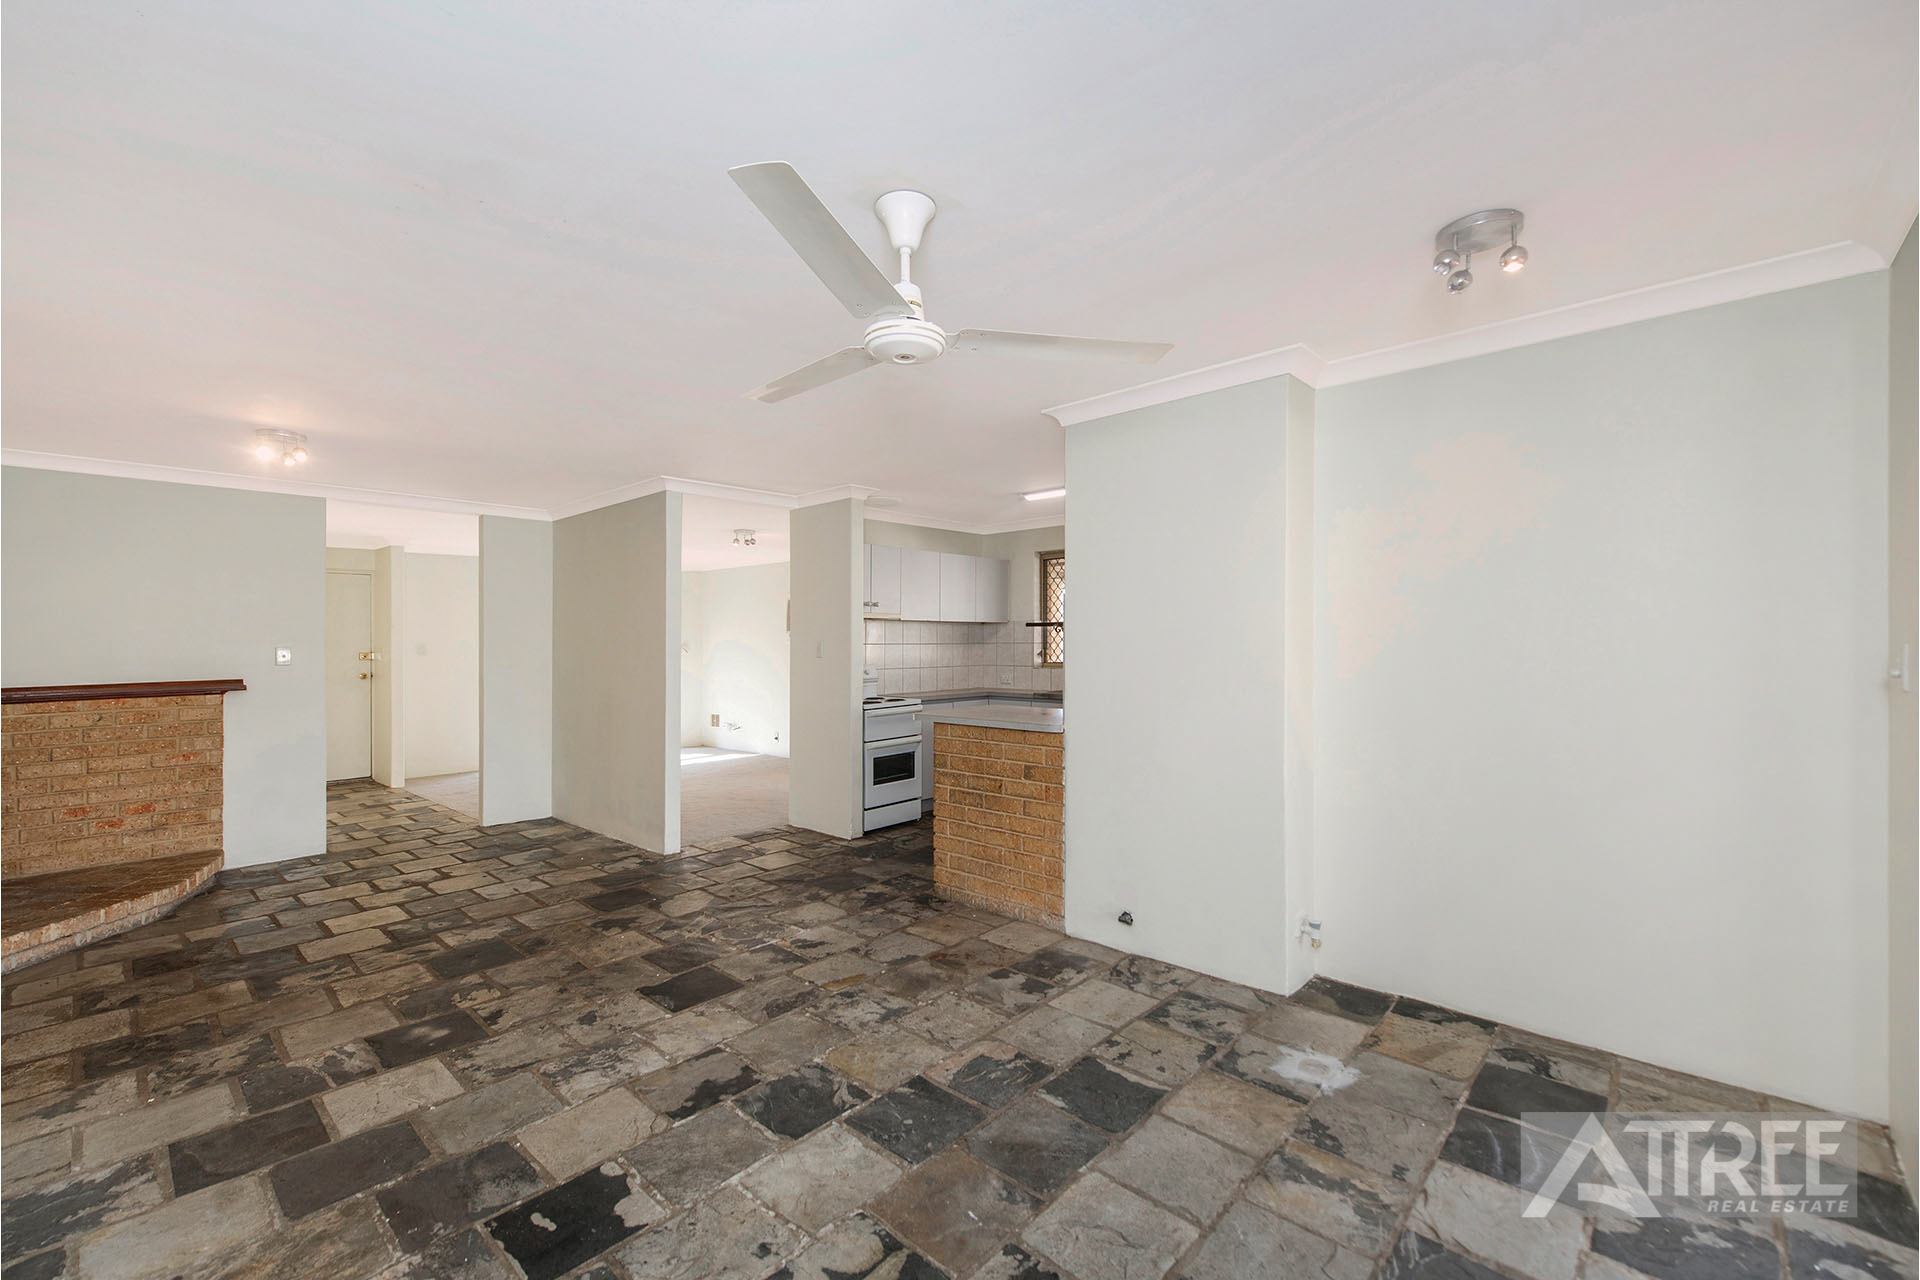 Property for sale in GOSNELLS, 7 Parrot Court : Attree Real Estate